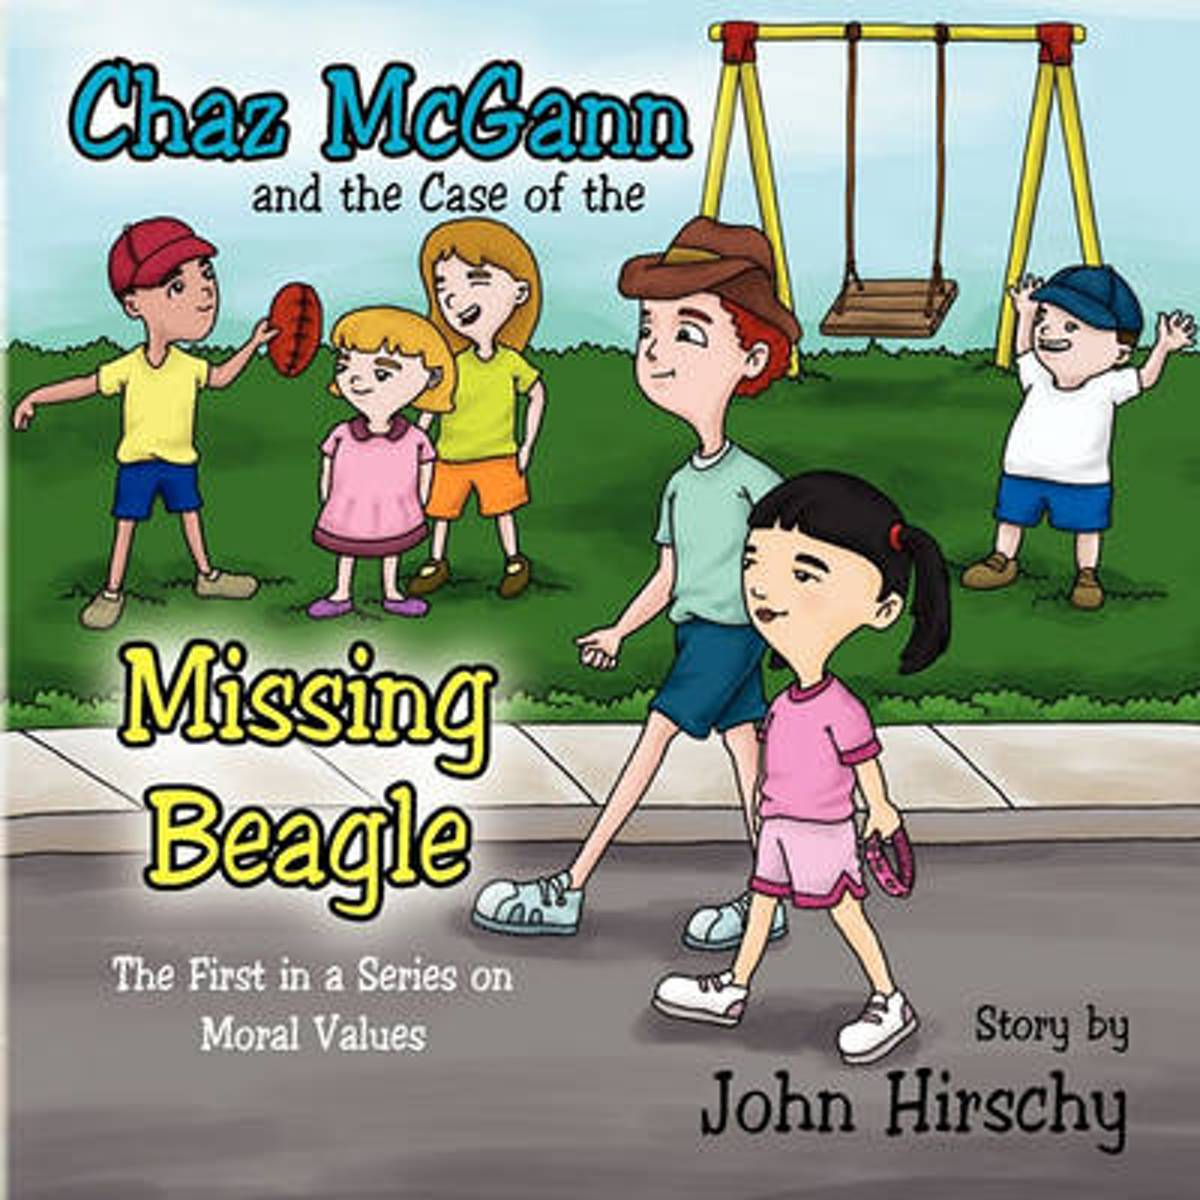 Chaz McGann and the Case of the Missing Beagle